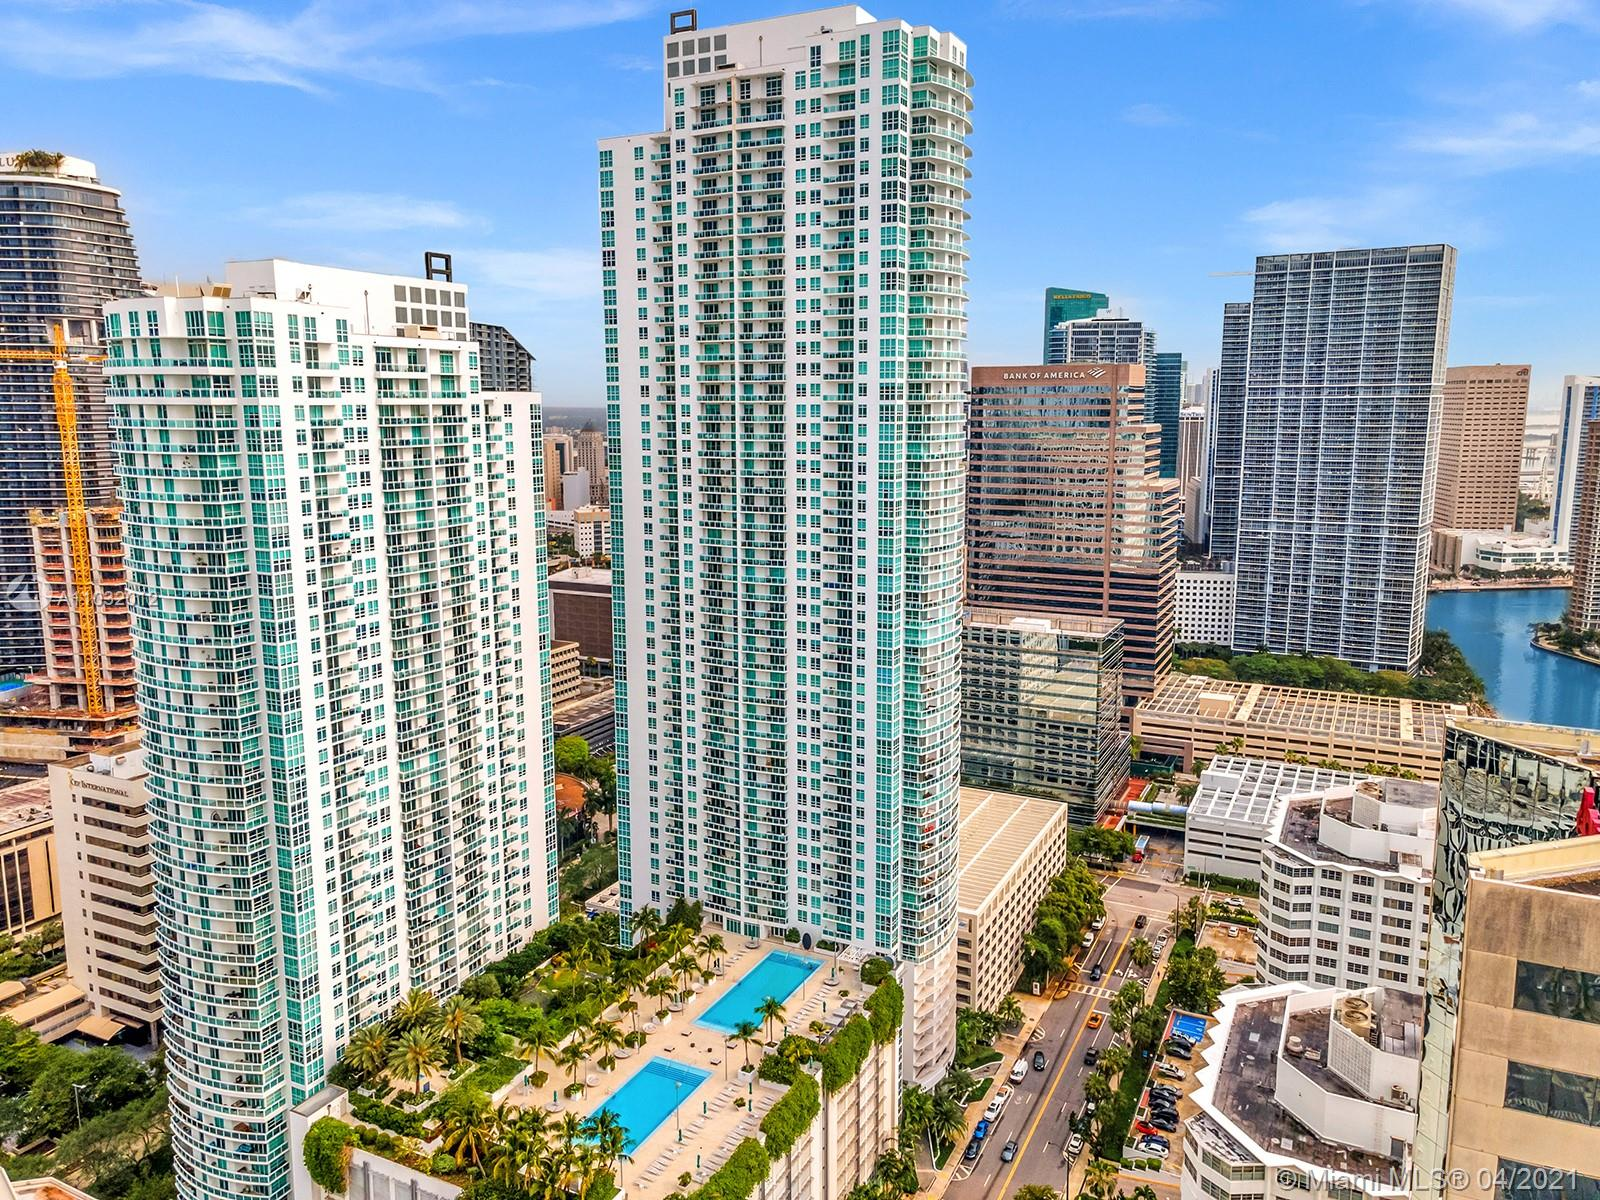 The Plaza on Brickell West Tower